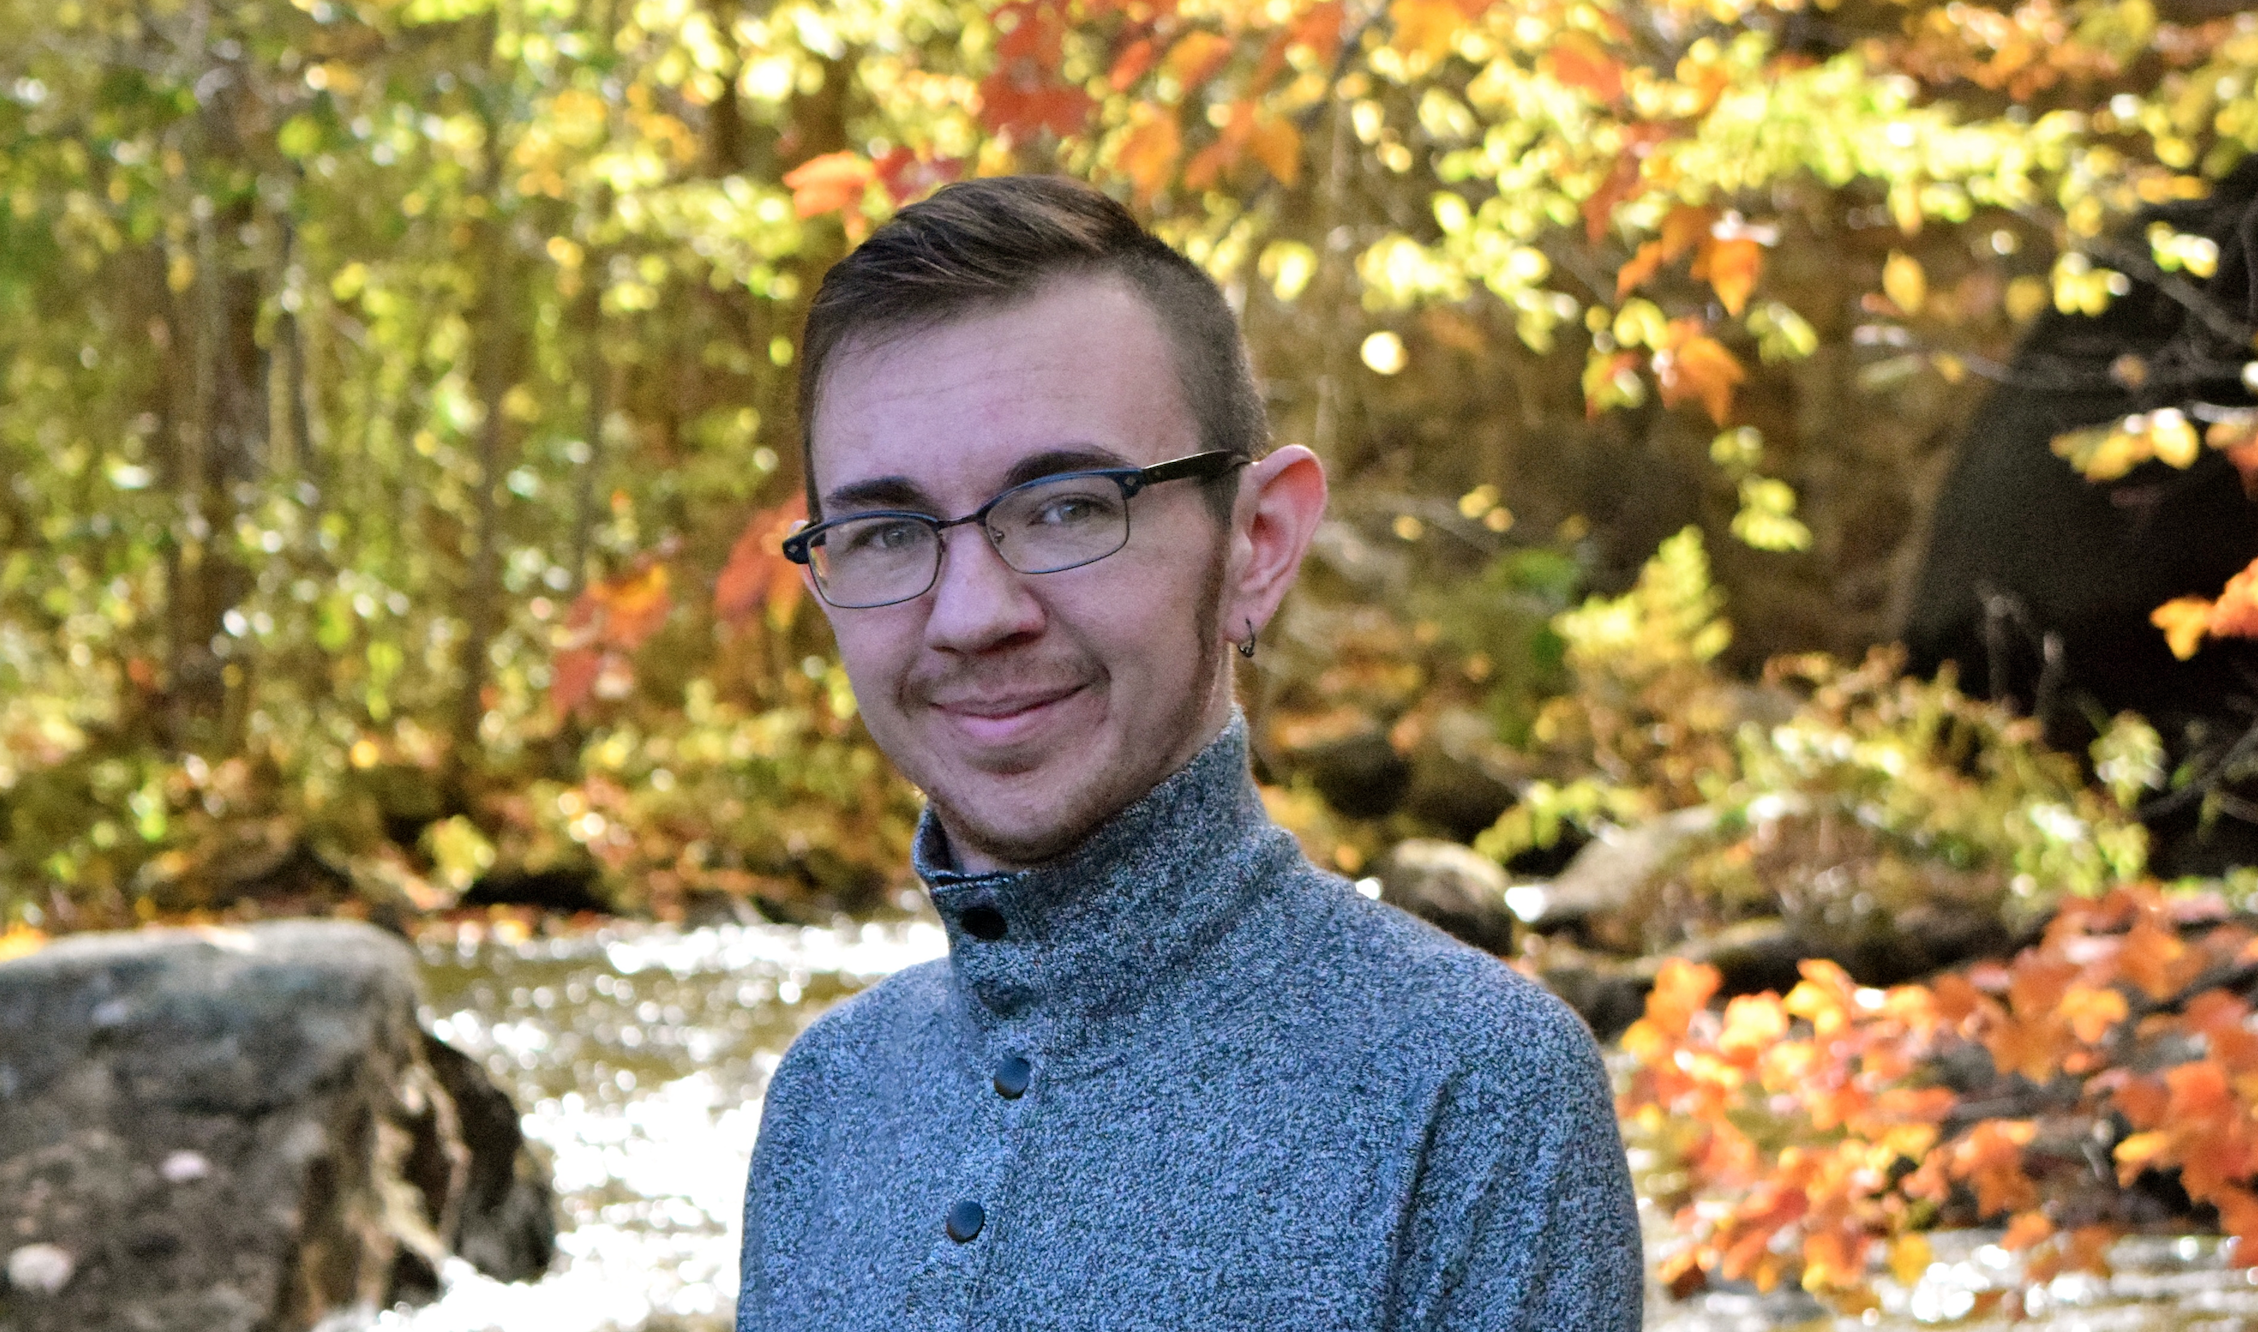 essay on accessible academic research jackson wright shultz is an activist educator and the author of trans portraits voices from transgender communities as the education director for the